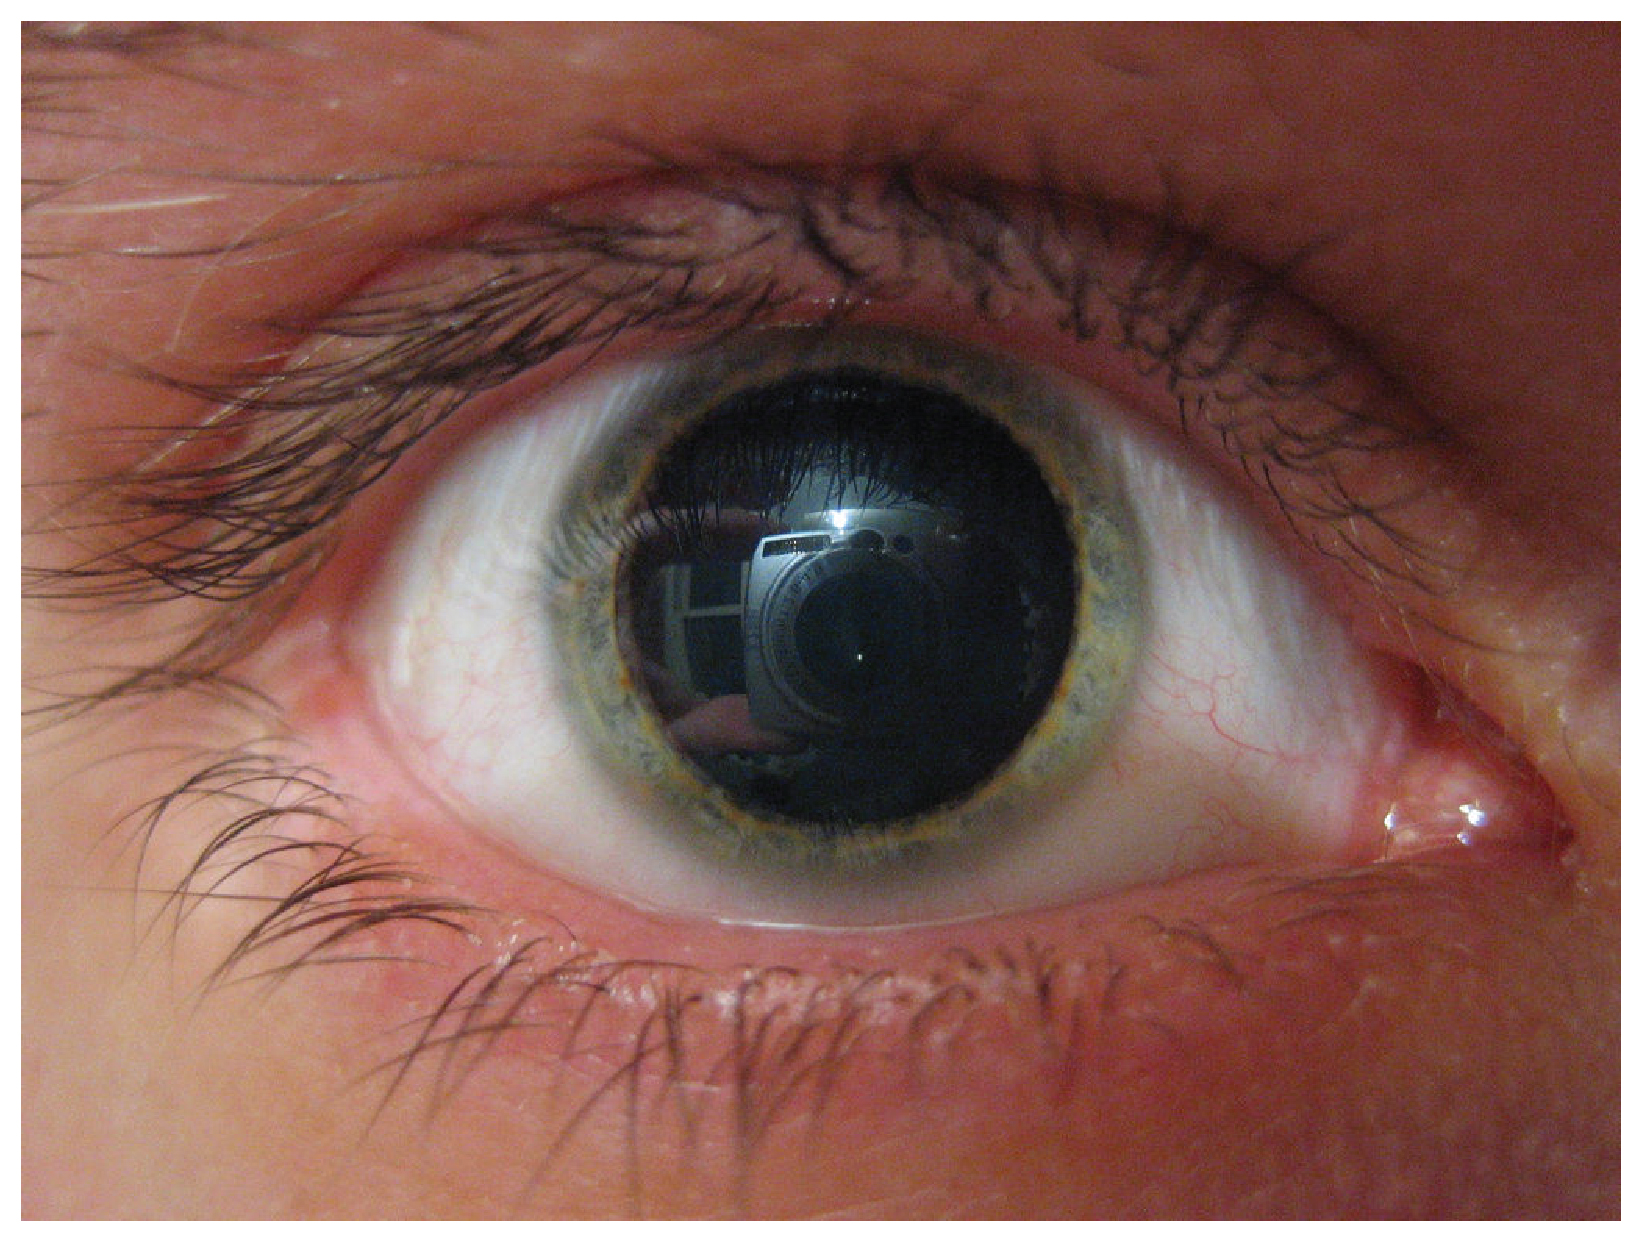 This photograph shows a person's eye with a relatively large pupil.